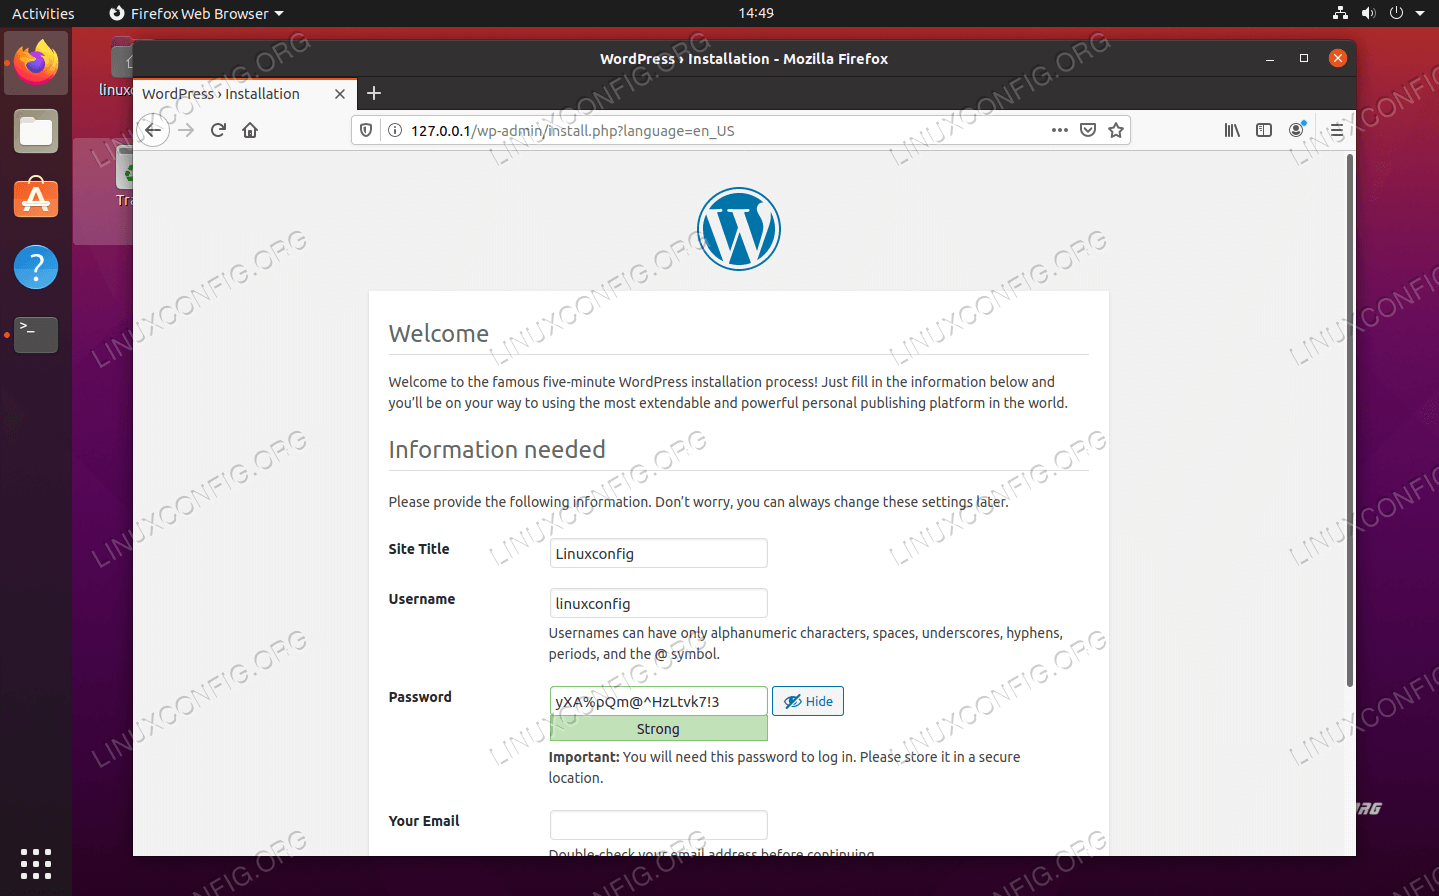 Enter information about your new WordPress site